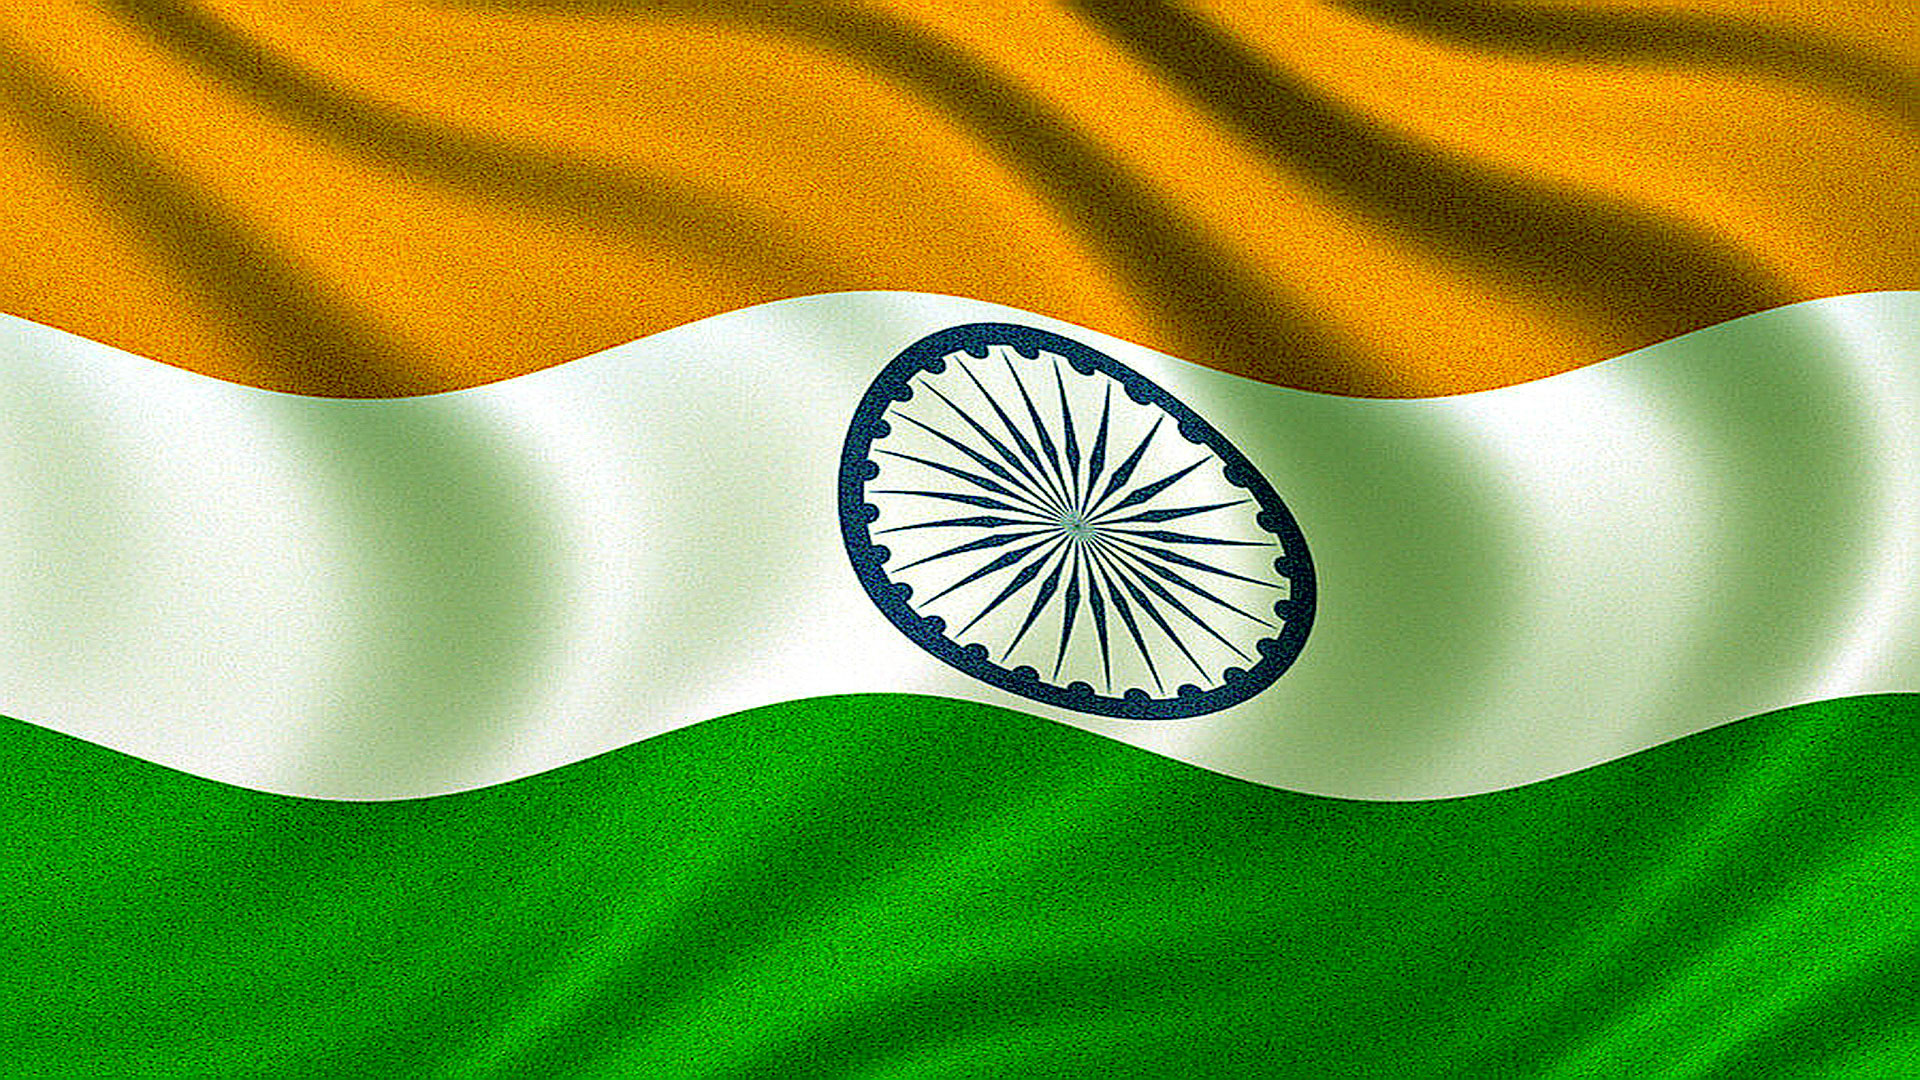 Indian Flag Hd Wallpaper: Indian-Flag-HD-Wallpapers-2015-4